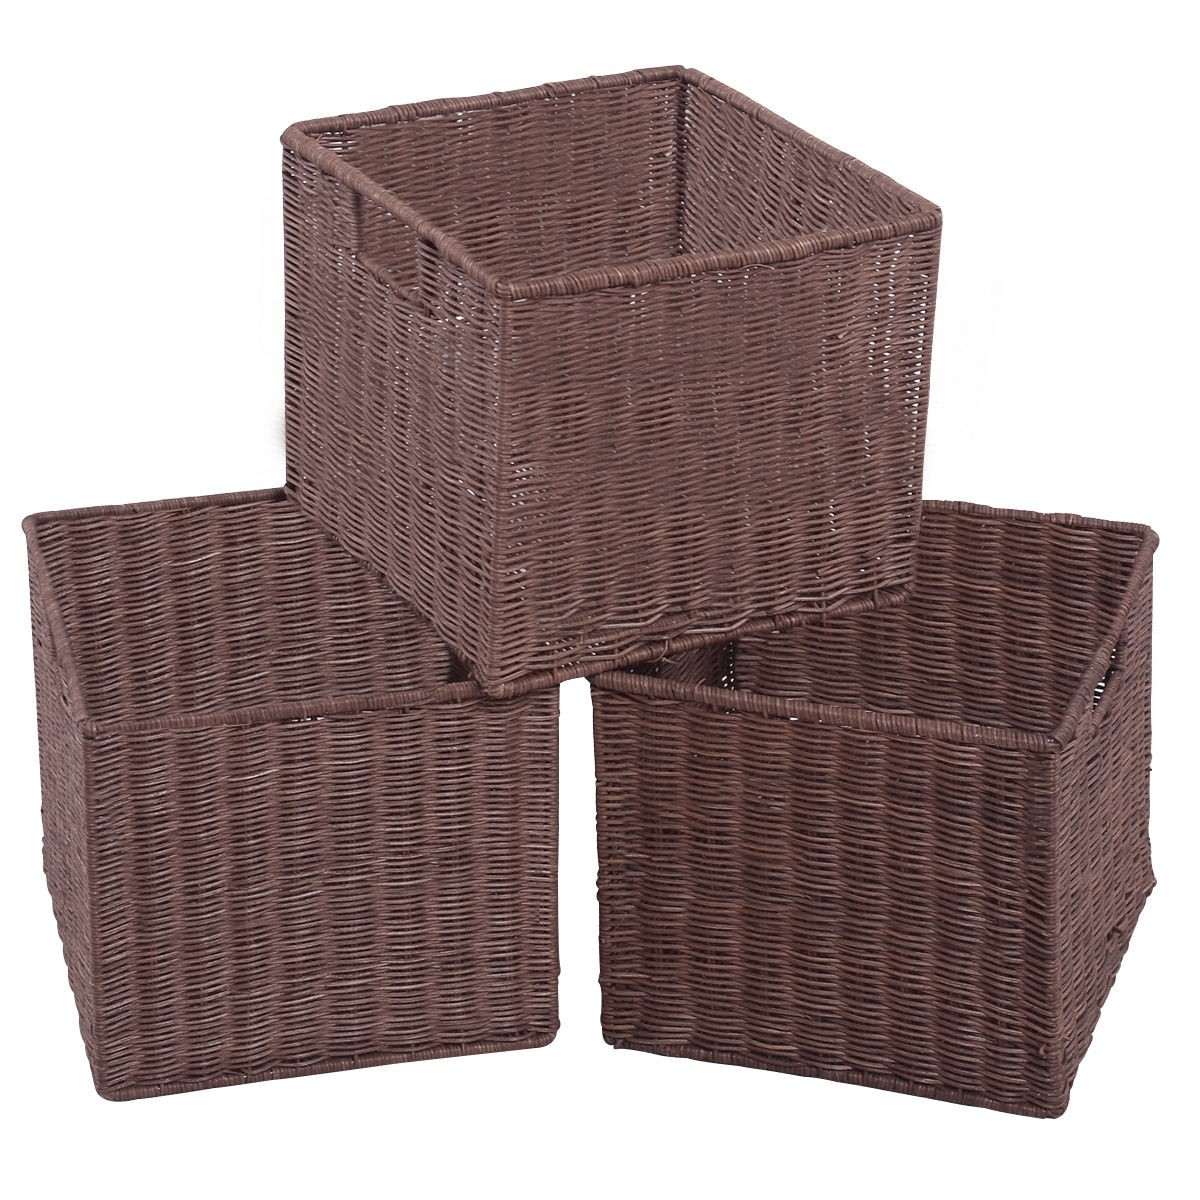 Set of 3 Cube Wicker Rattan Storage Baskets